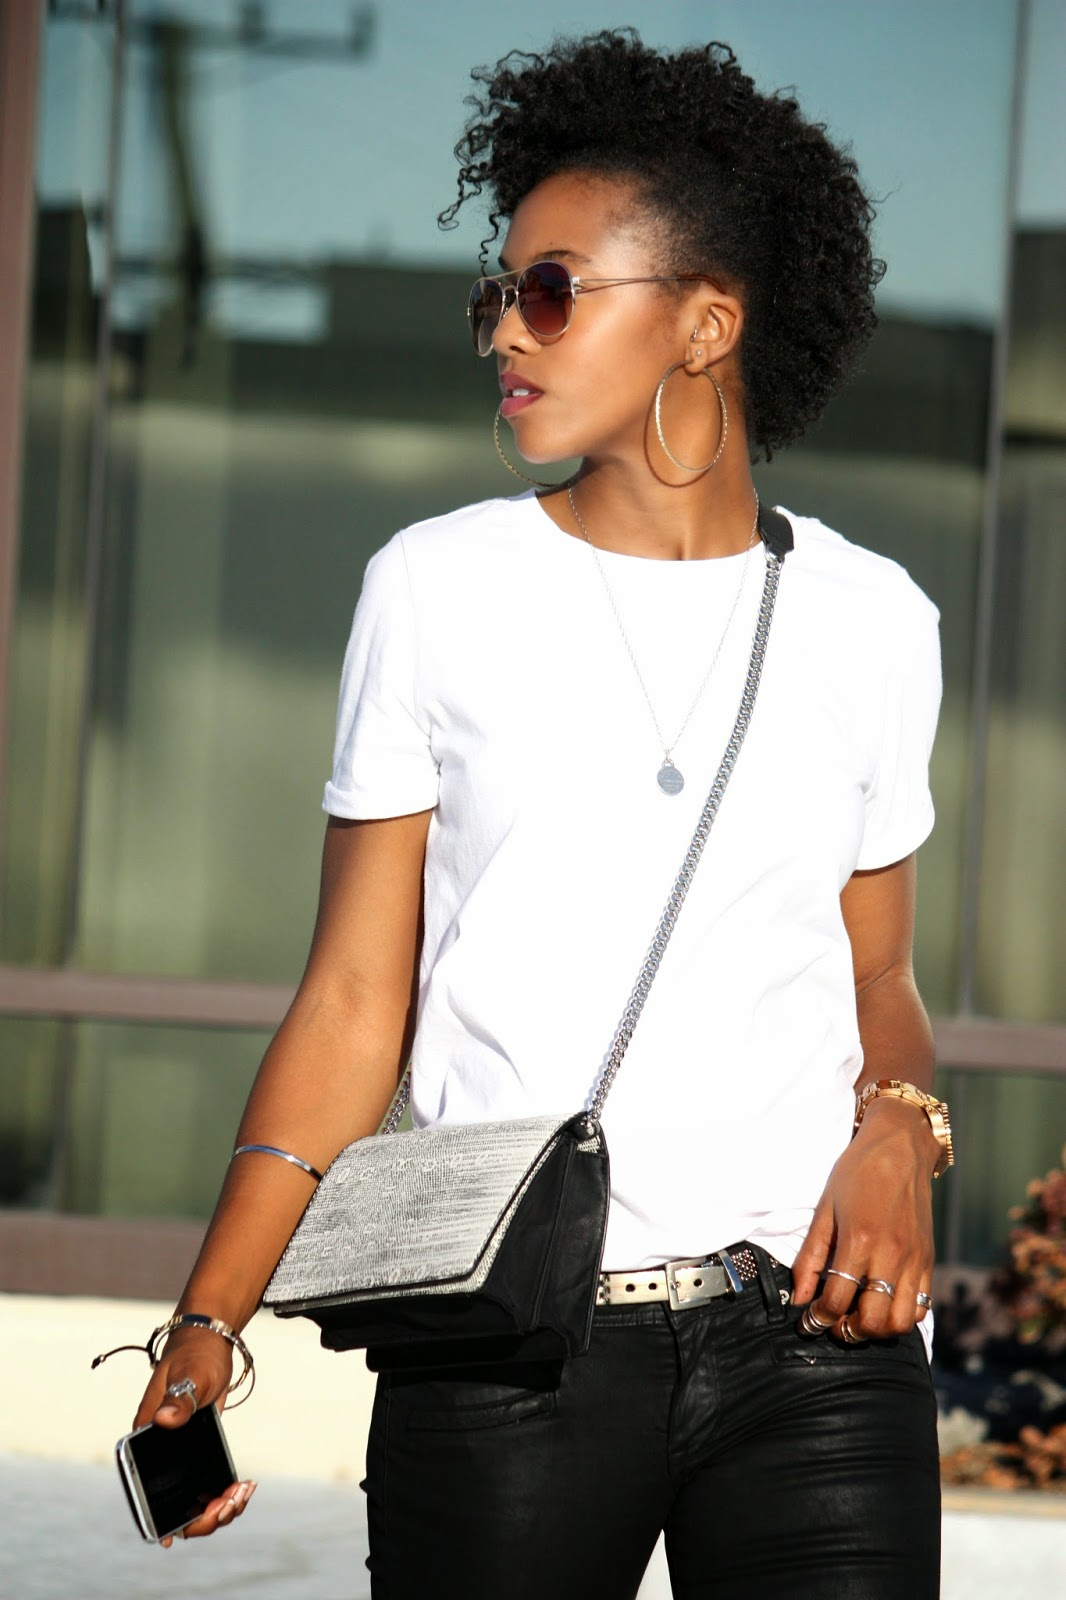 Wearing H&M sunglasses Tiffany & Co oval pendant necklace with a Nixon rose-gold watch